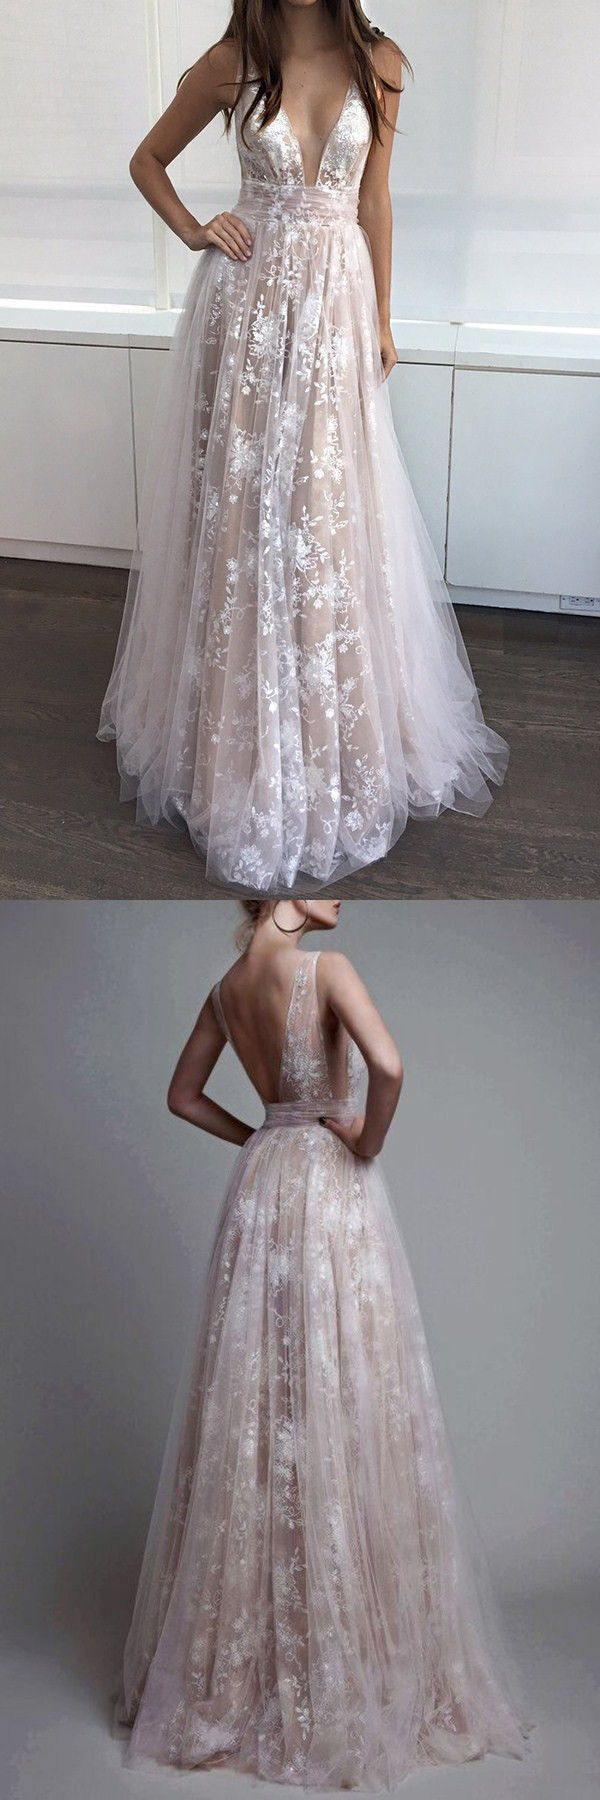 Aline deep vneck champagne tulle backless prom dress with lace